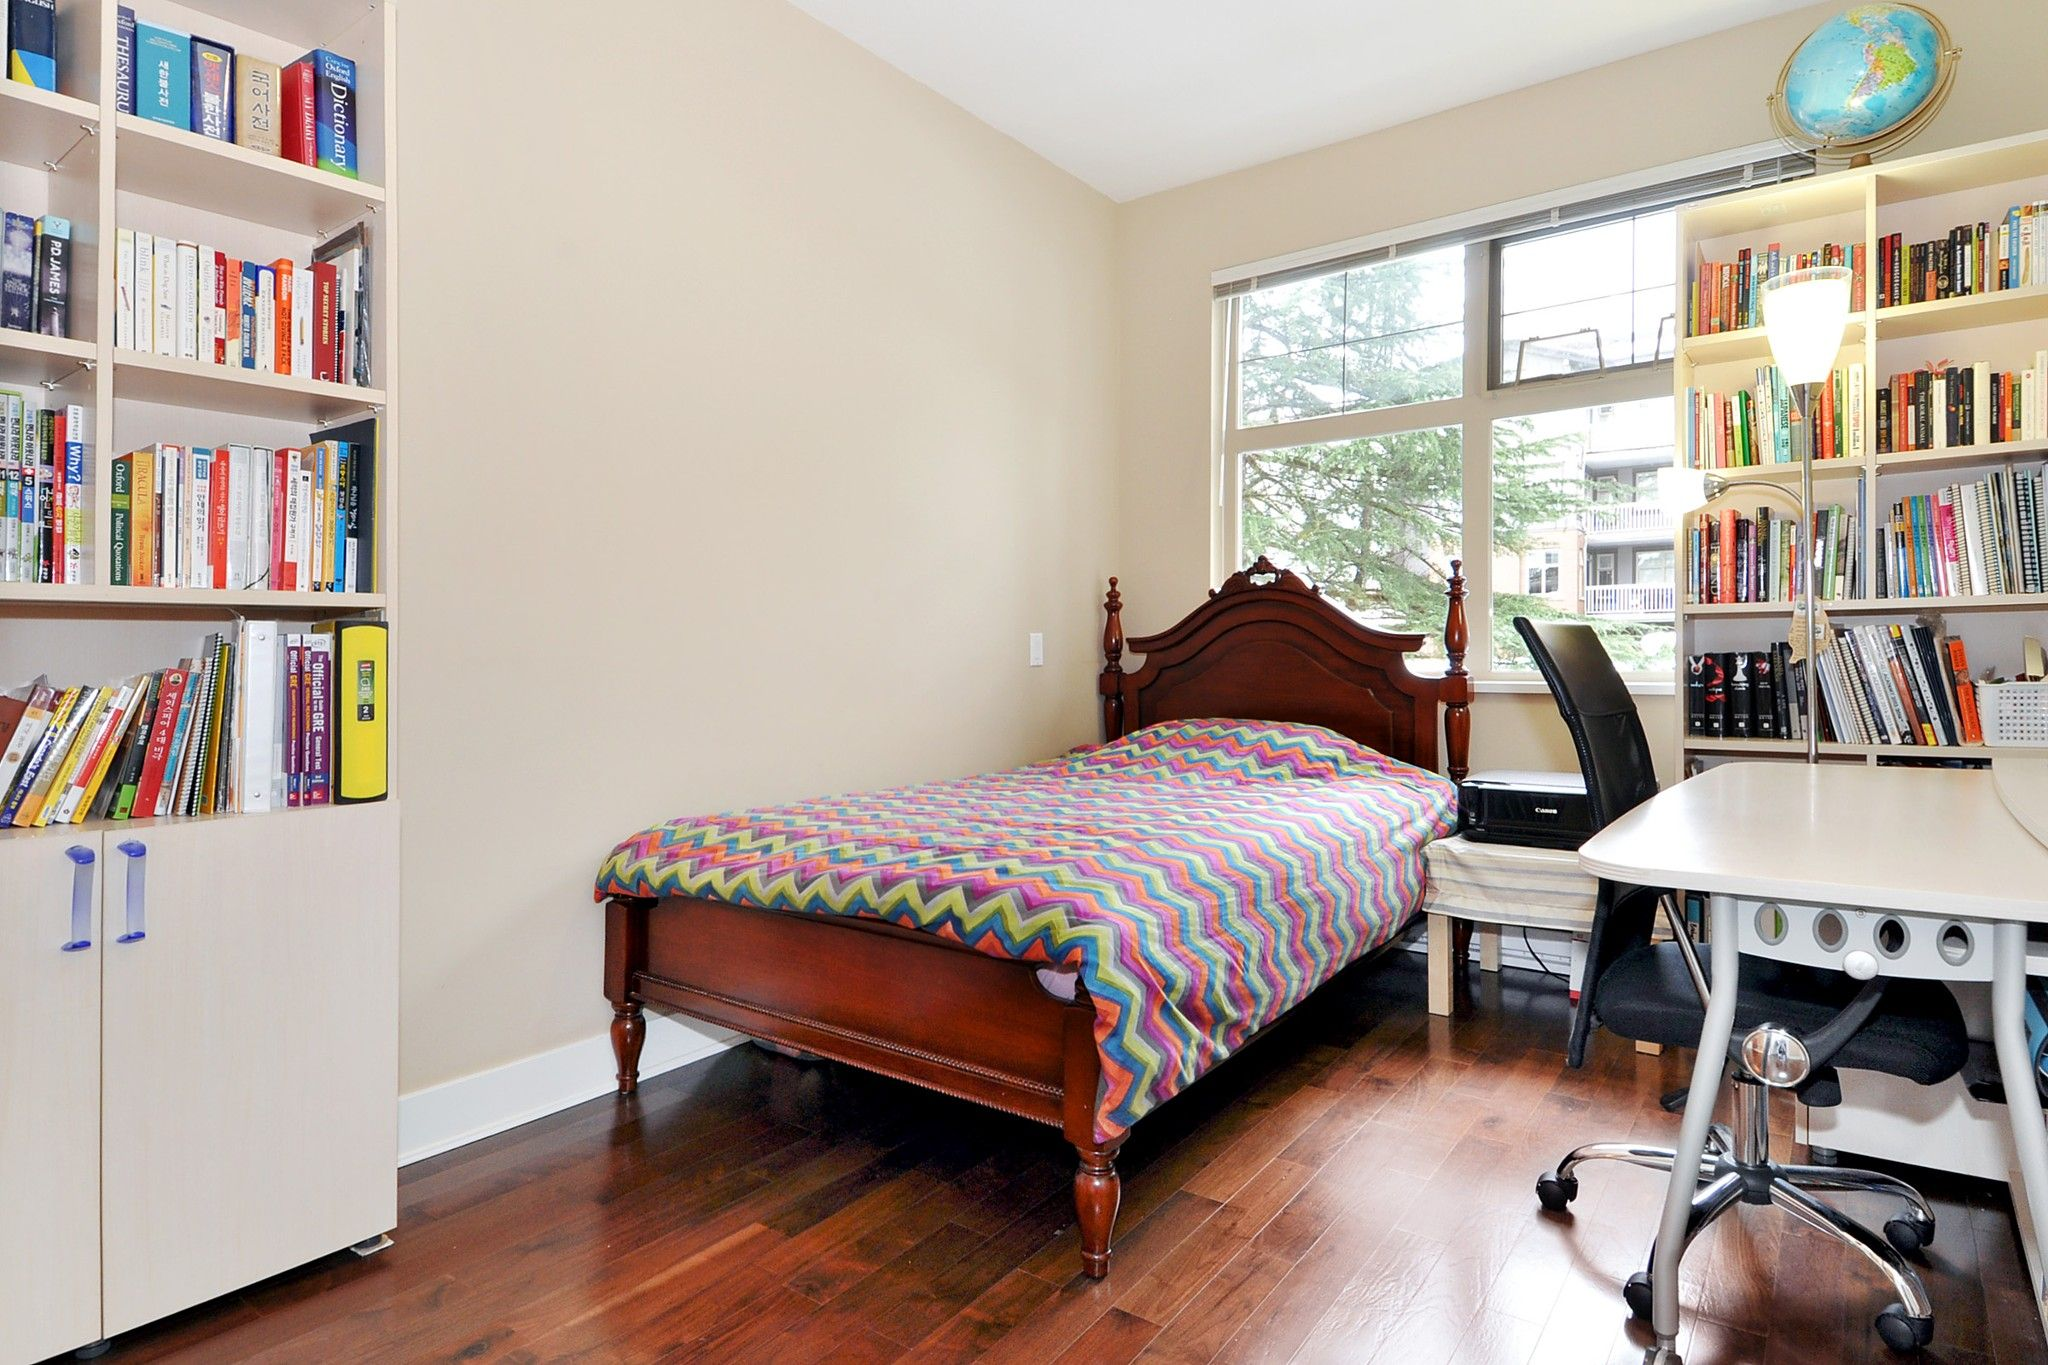 """Photo 8: Photos: 222 2083 W 33RD Avenue in Vancouver: Quilchena Condo for sale in """"DEVONSHIRE HOUSE"""" (Vancouver West)  : MLS®# R2341234"""